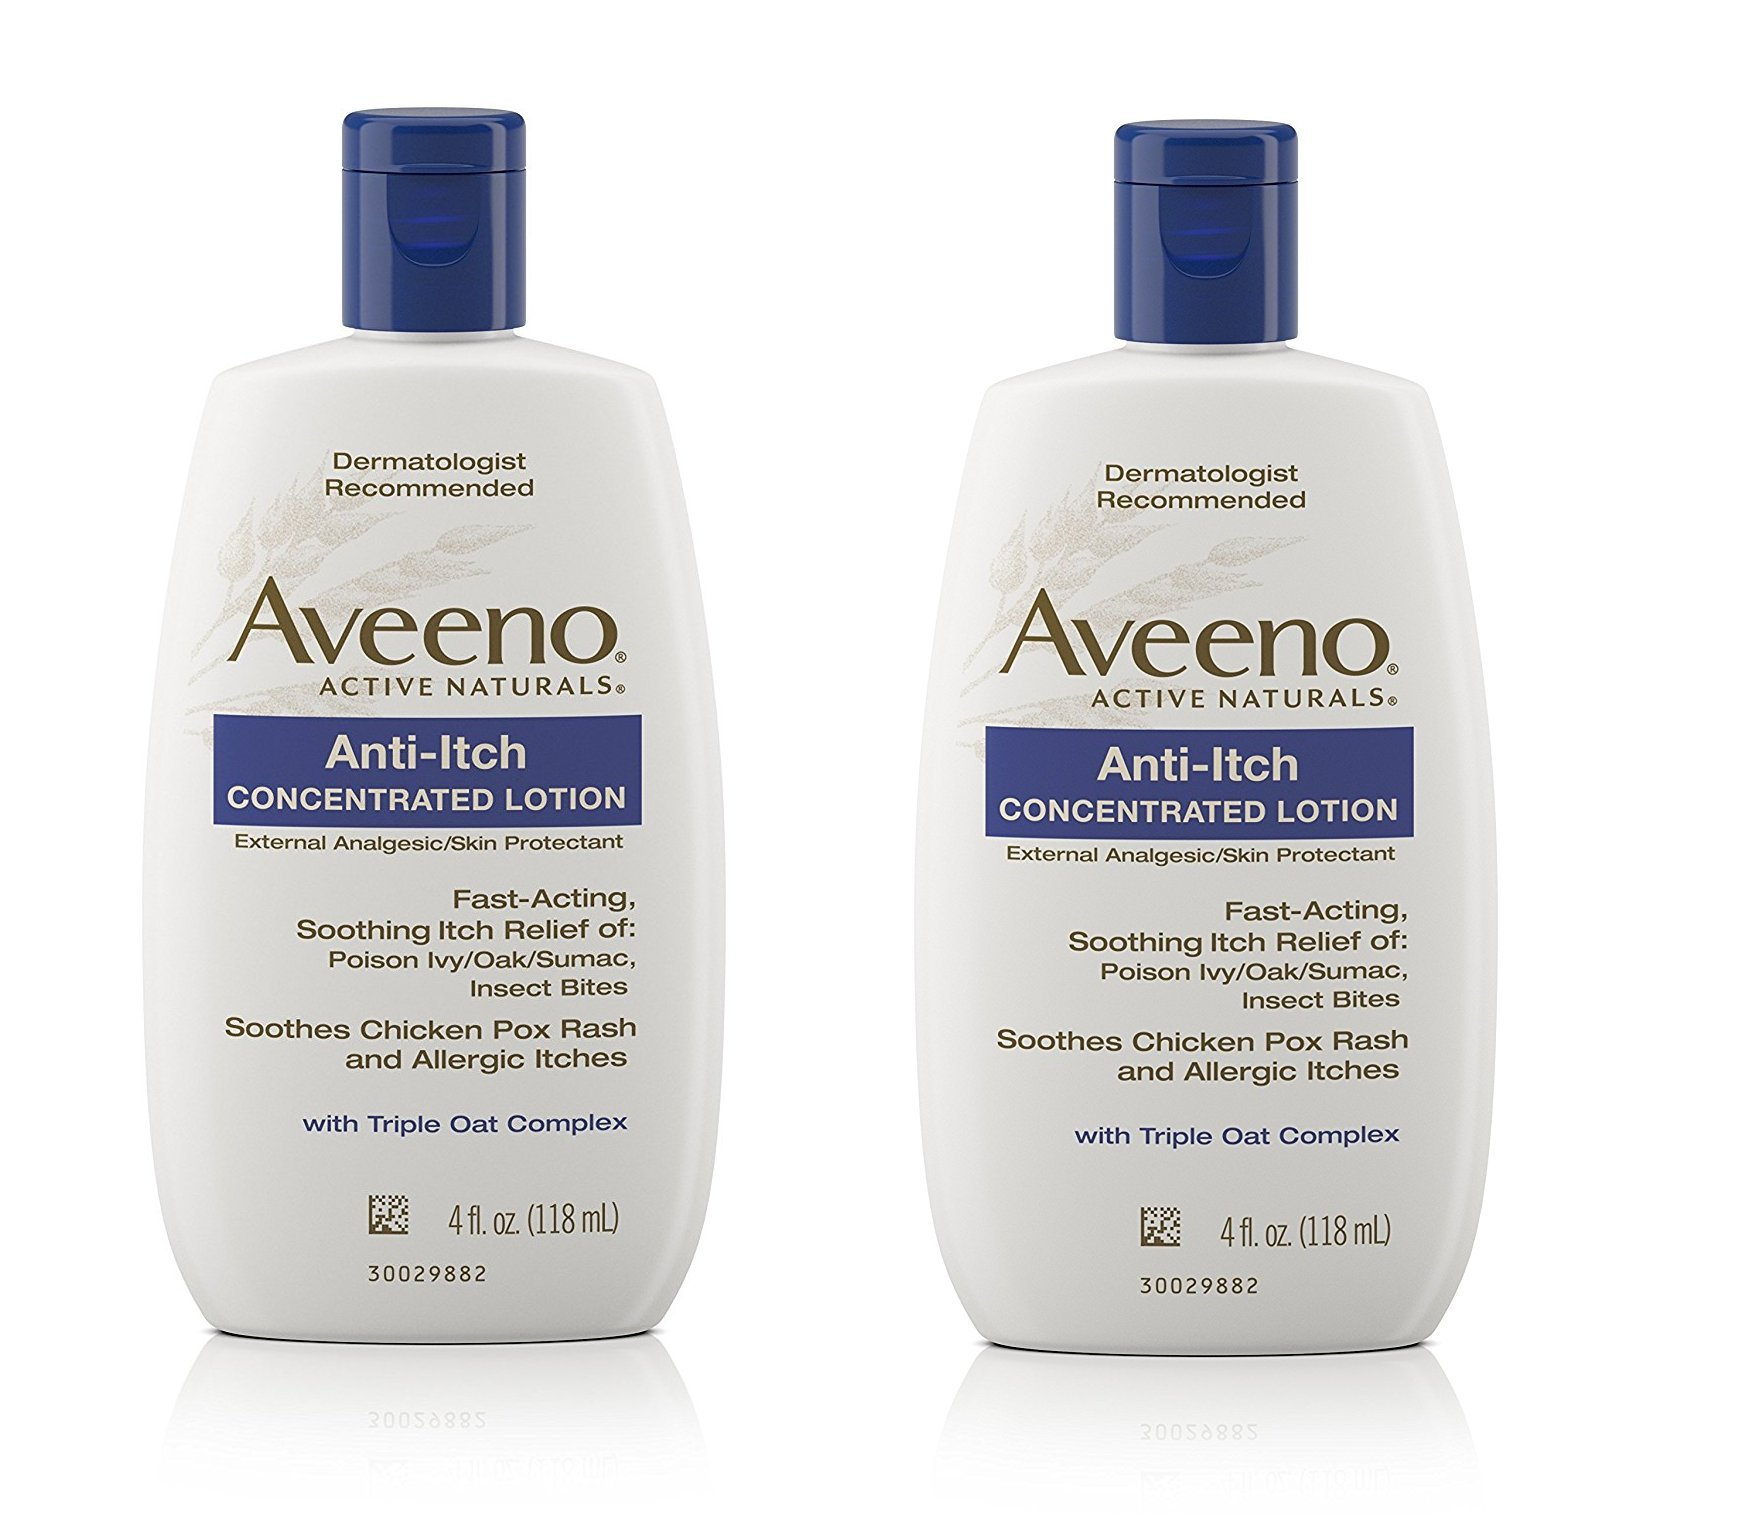 AVEENO Anti-Itch Concentrated Lotion 4 OZ - Buy Packs and SAVE (Pack of 2)